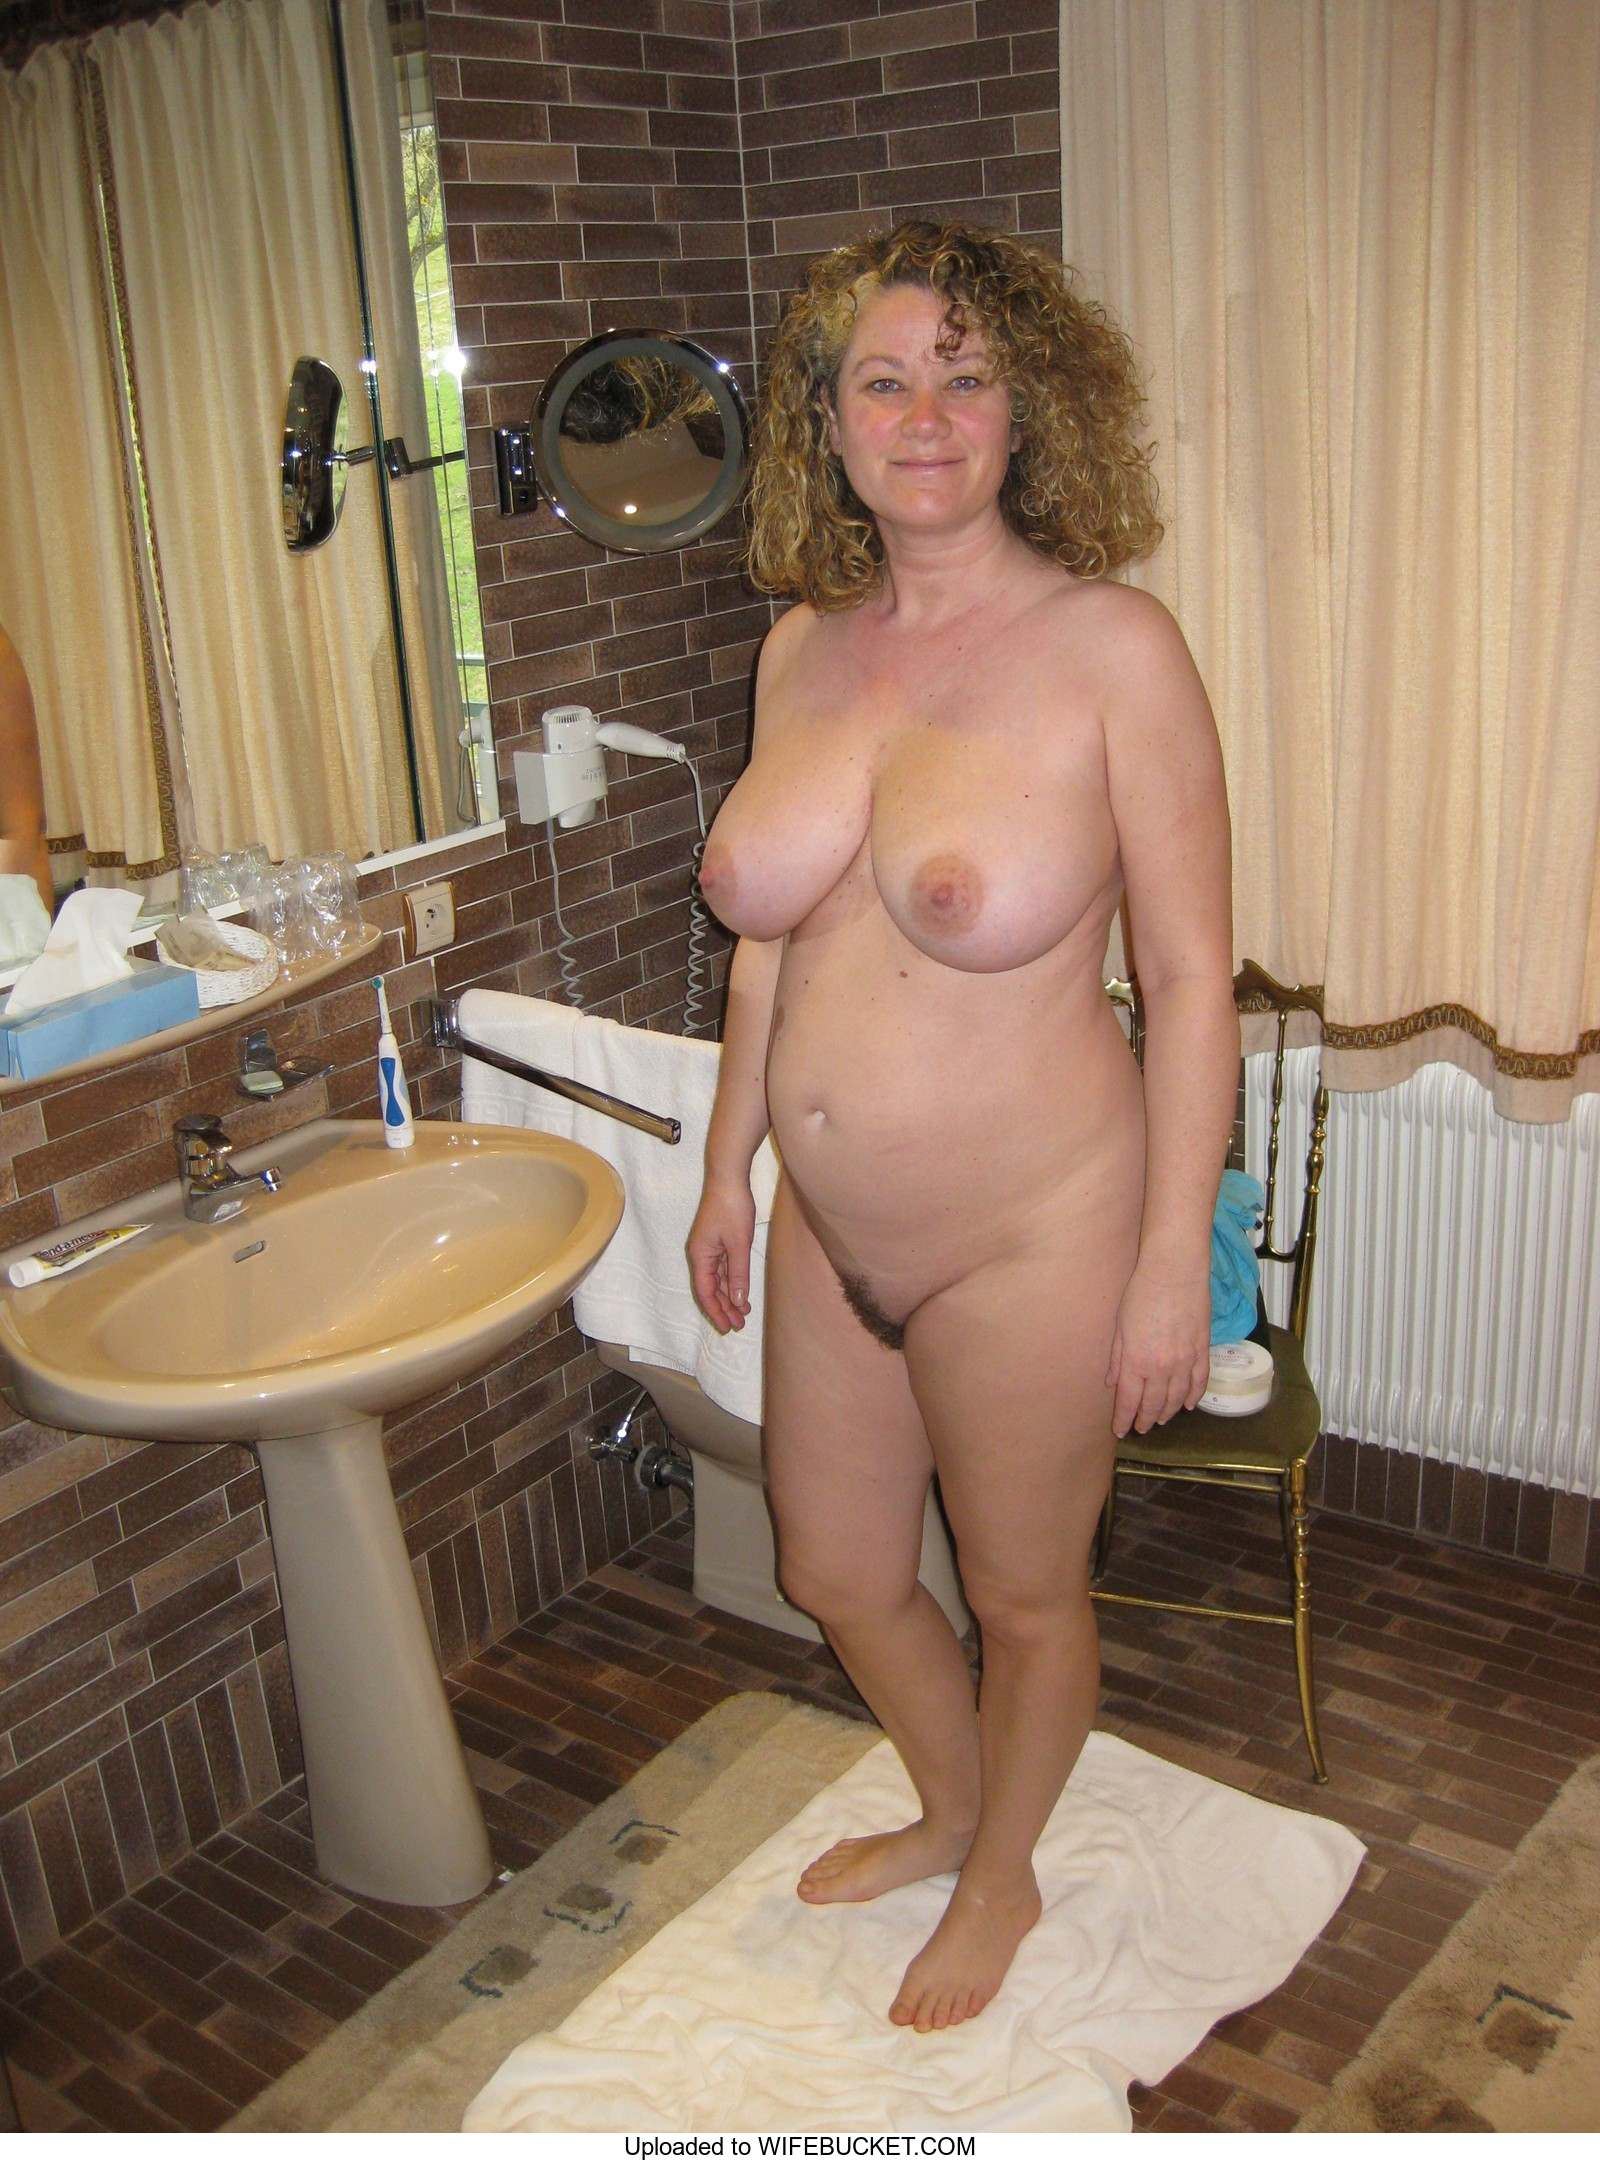 Nude housewife images